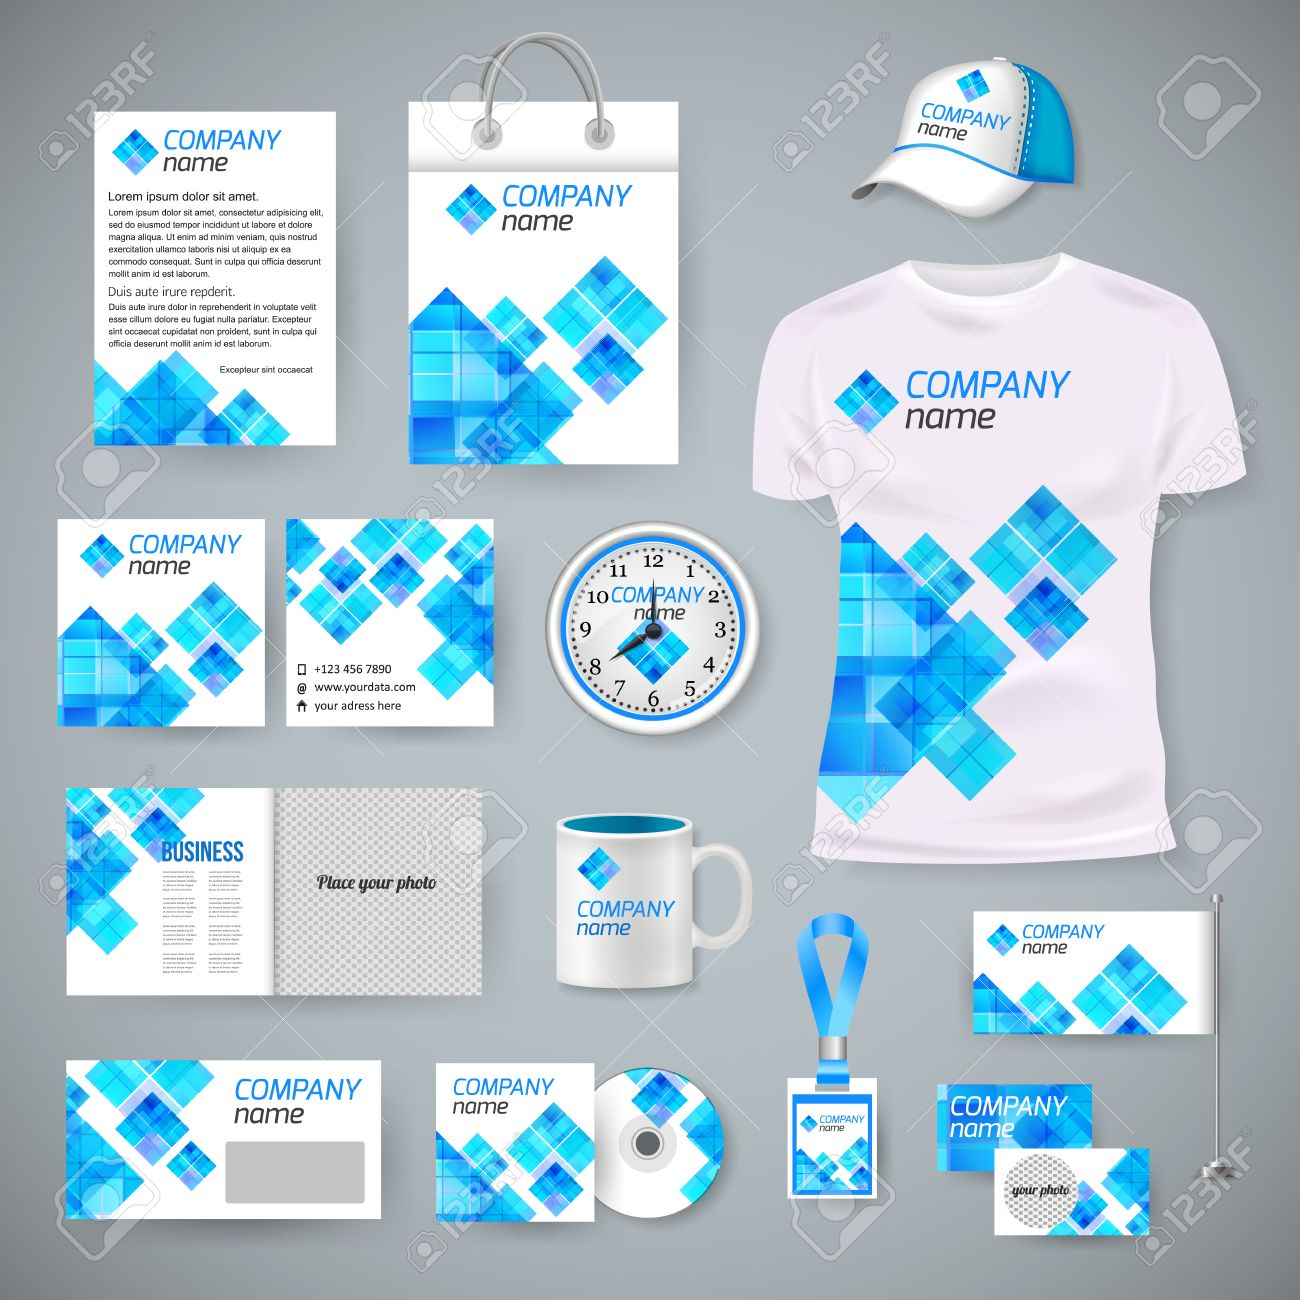 corporate identity business photorealistic design template classic